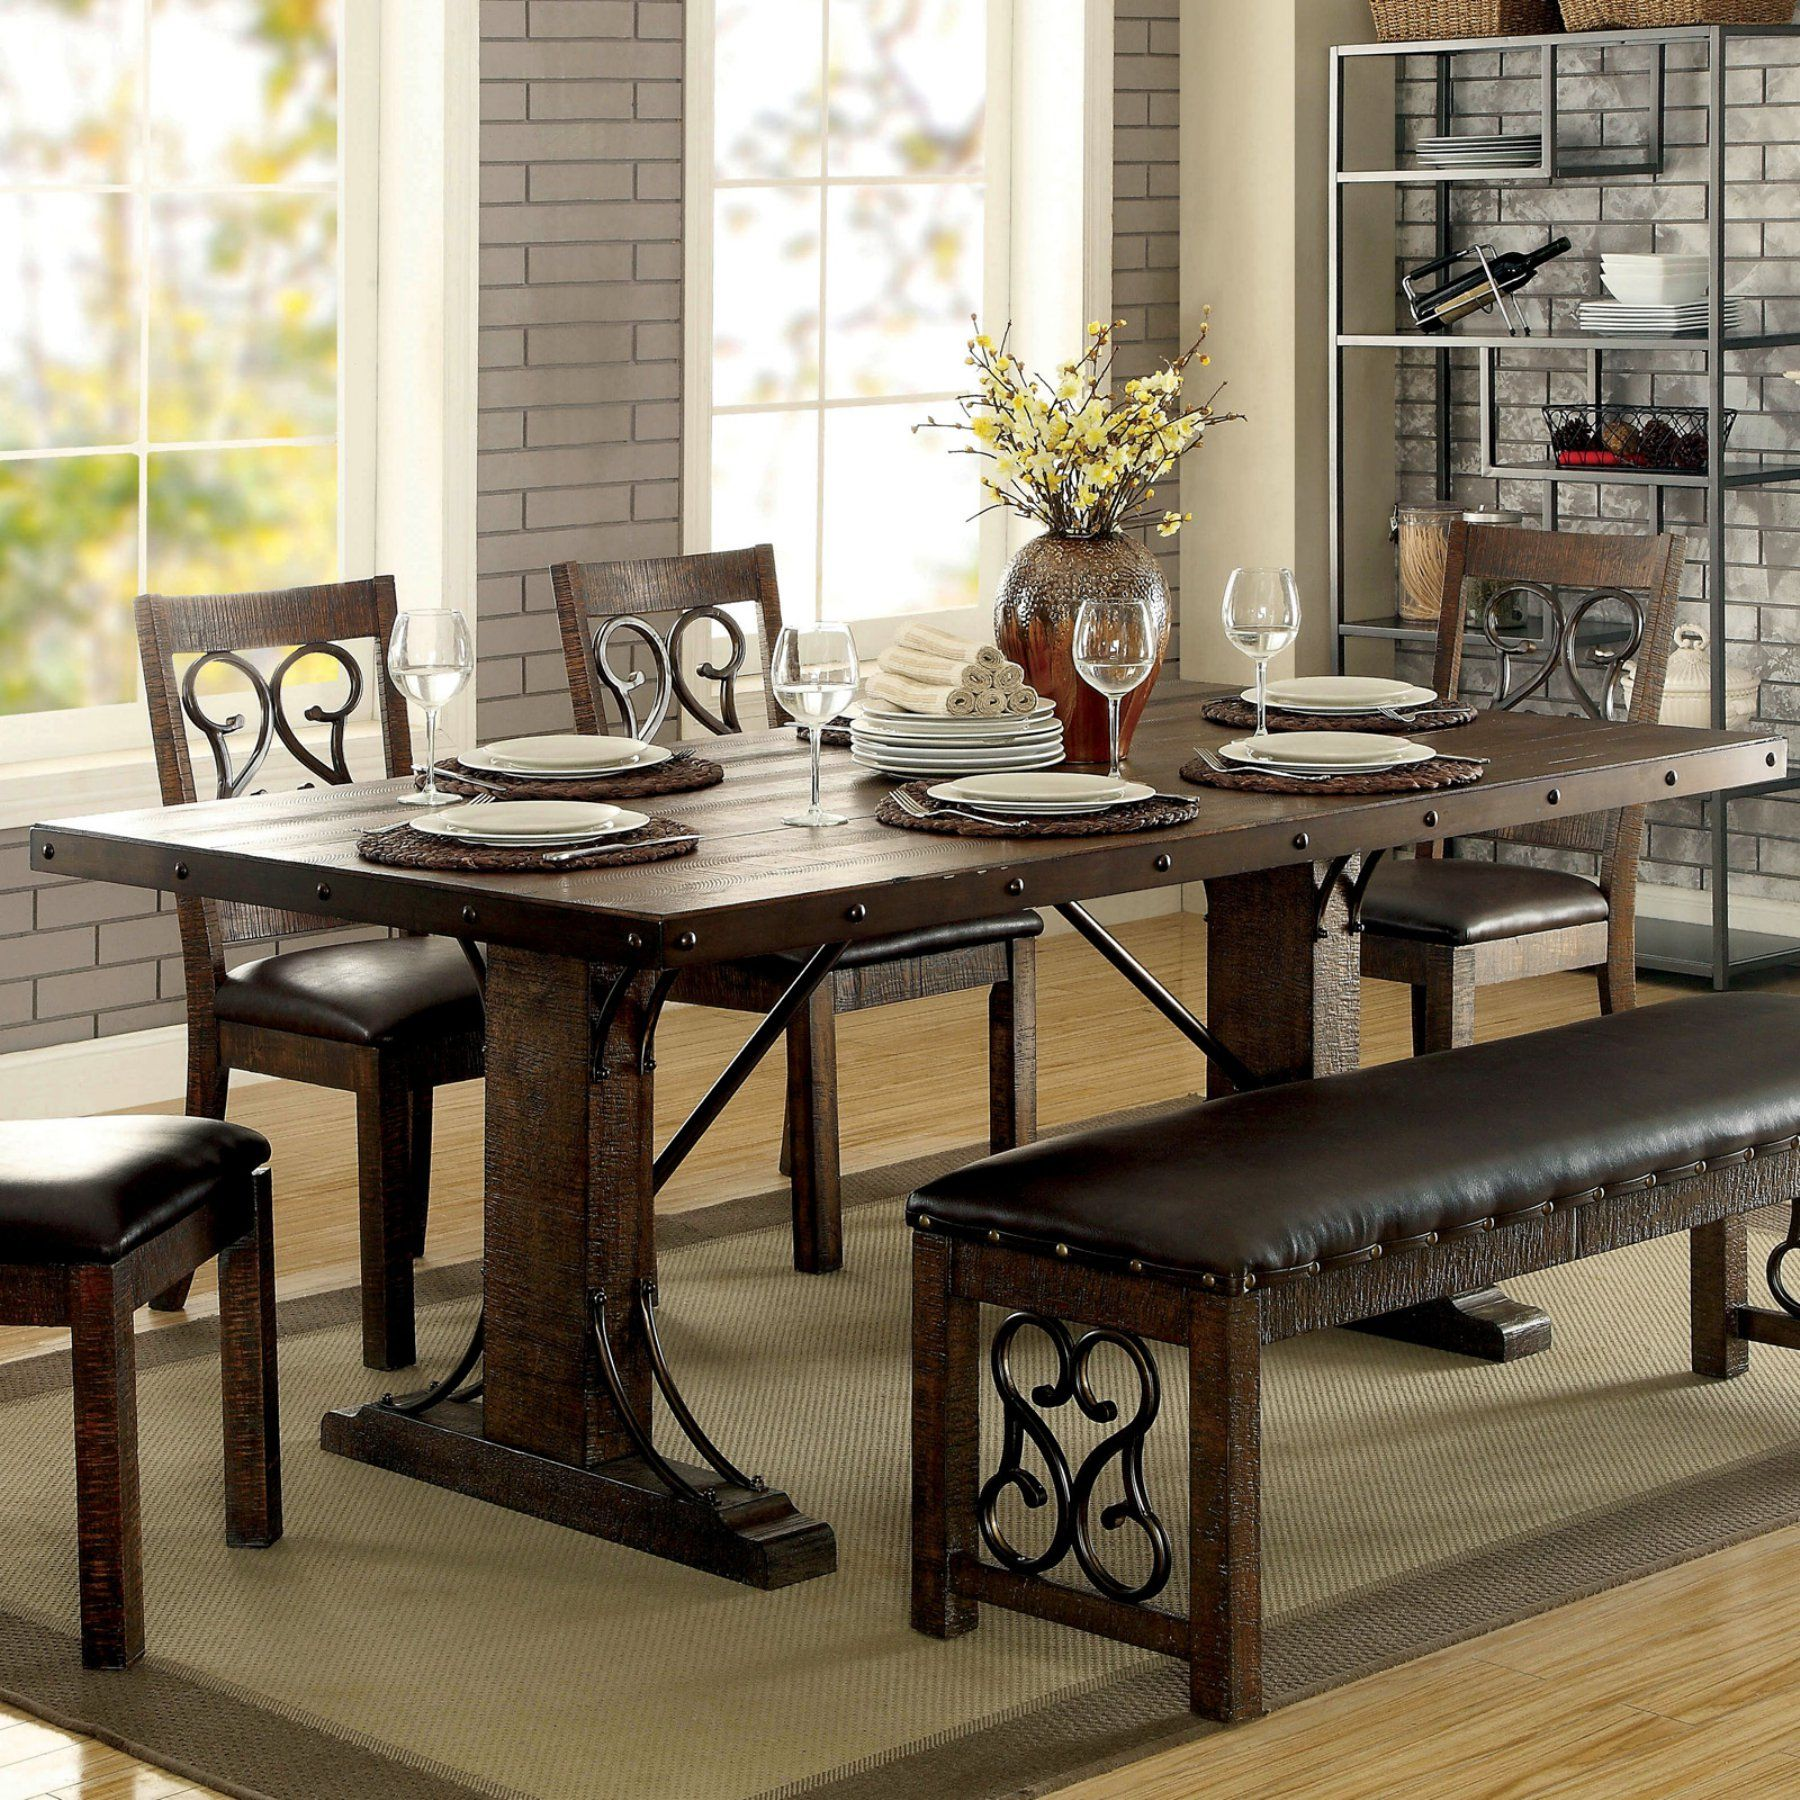 furniture america thwan traditional plank style metal accent dining table accents idf narrow runner homesense chairs teal side living room sofa sets painted tables chests diy